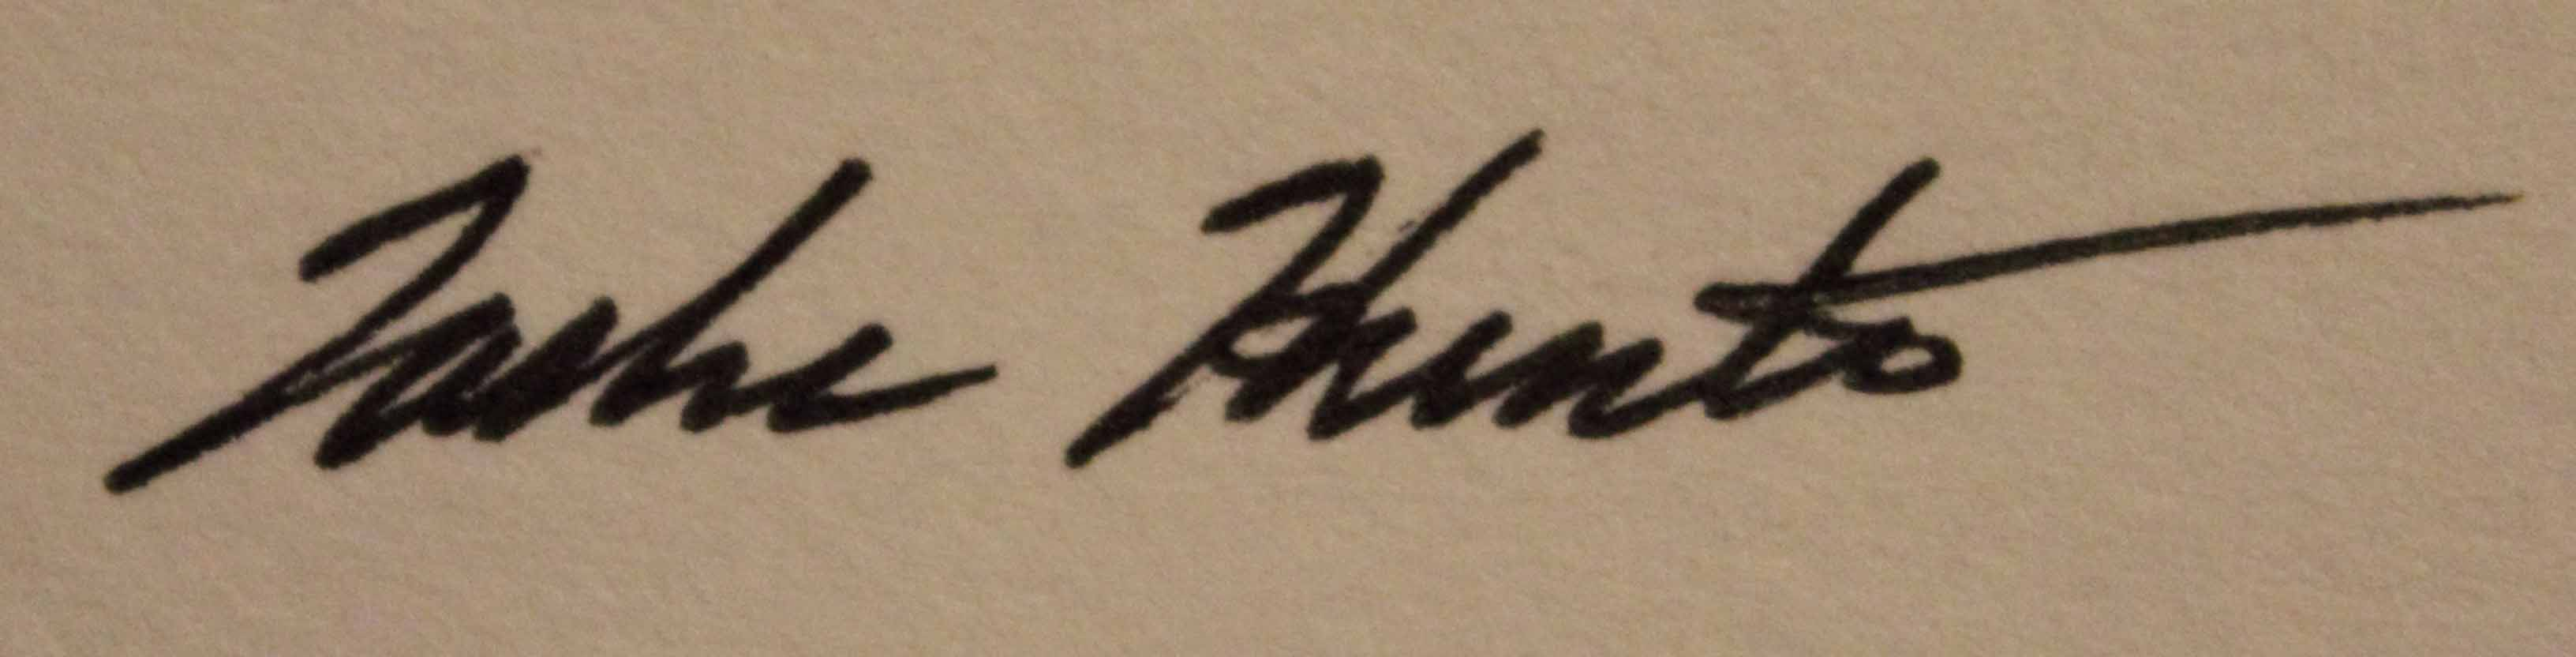 Tasha Hunter's Signature